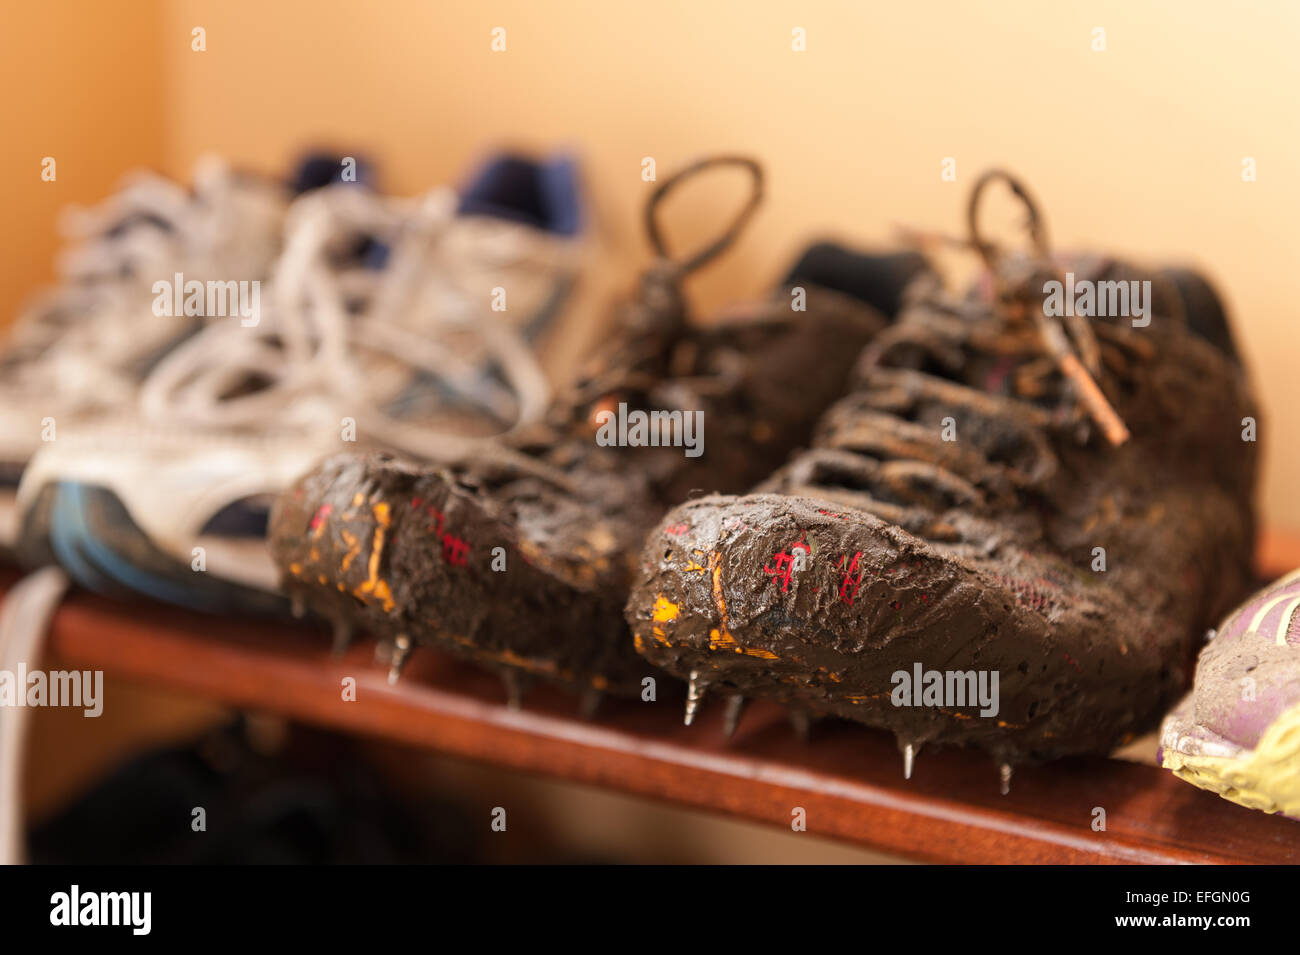 554e483f8c6e wet muddy running shoes coated in mud from cross country training showing  laces details and breathable